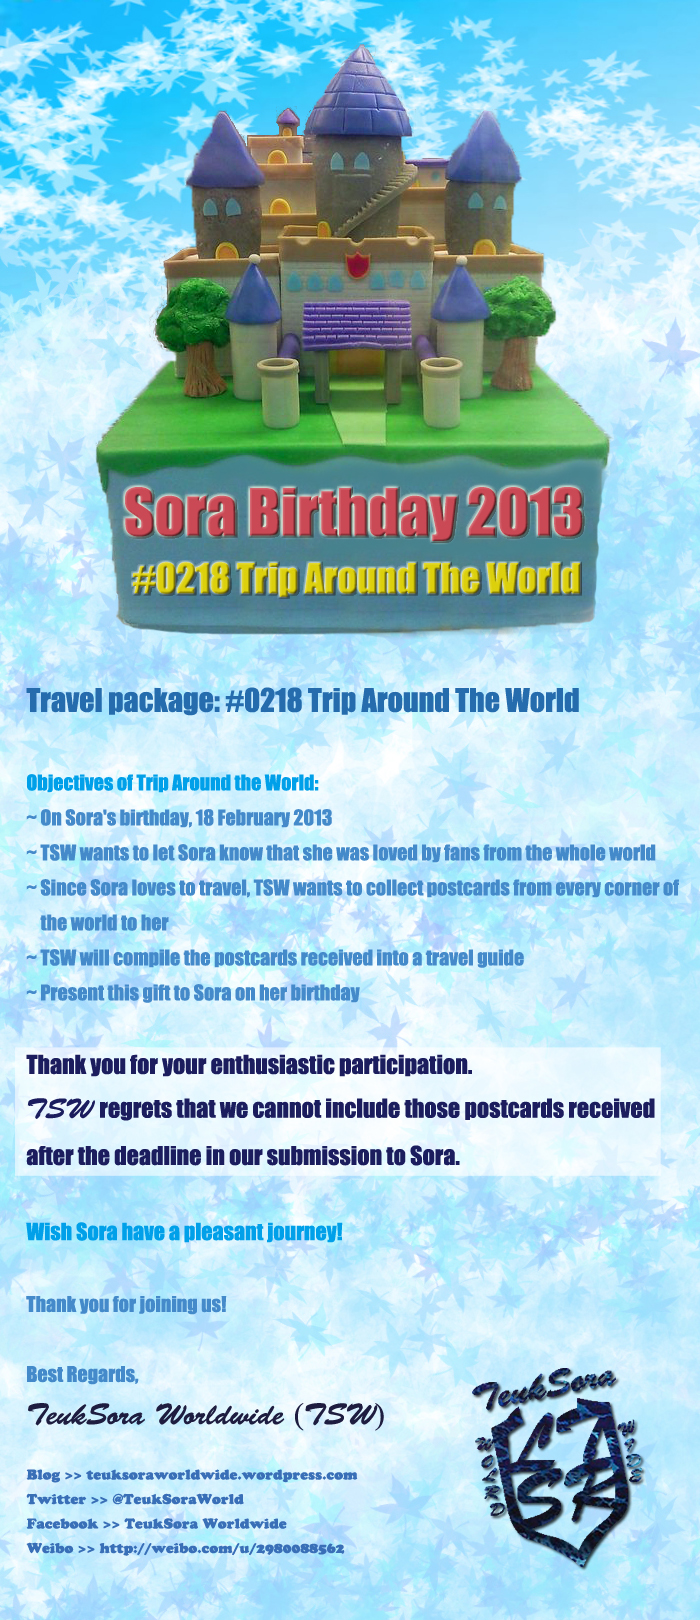 TSW Travel with thank you message